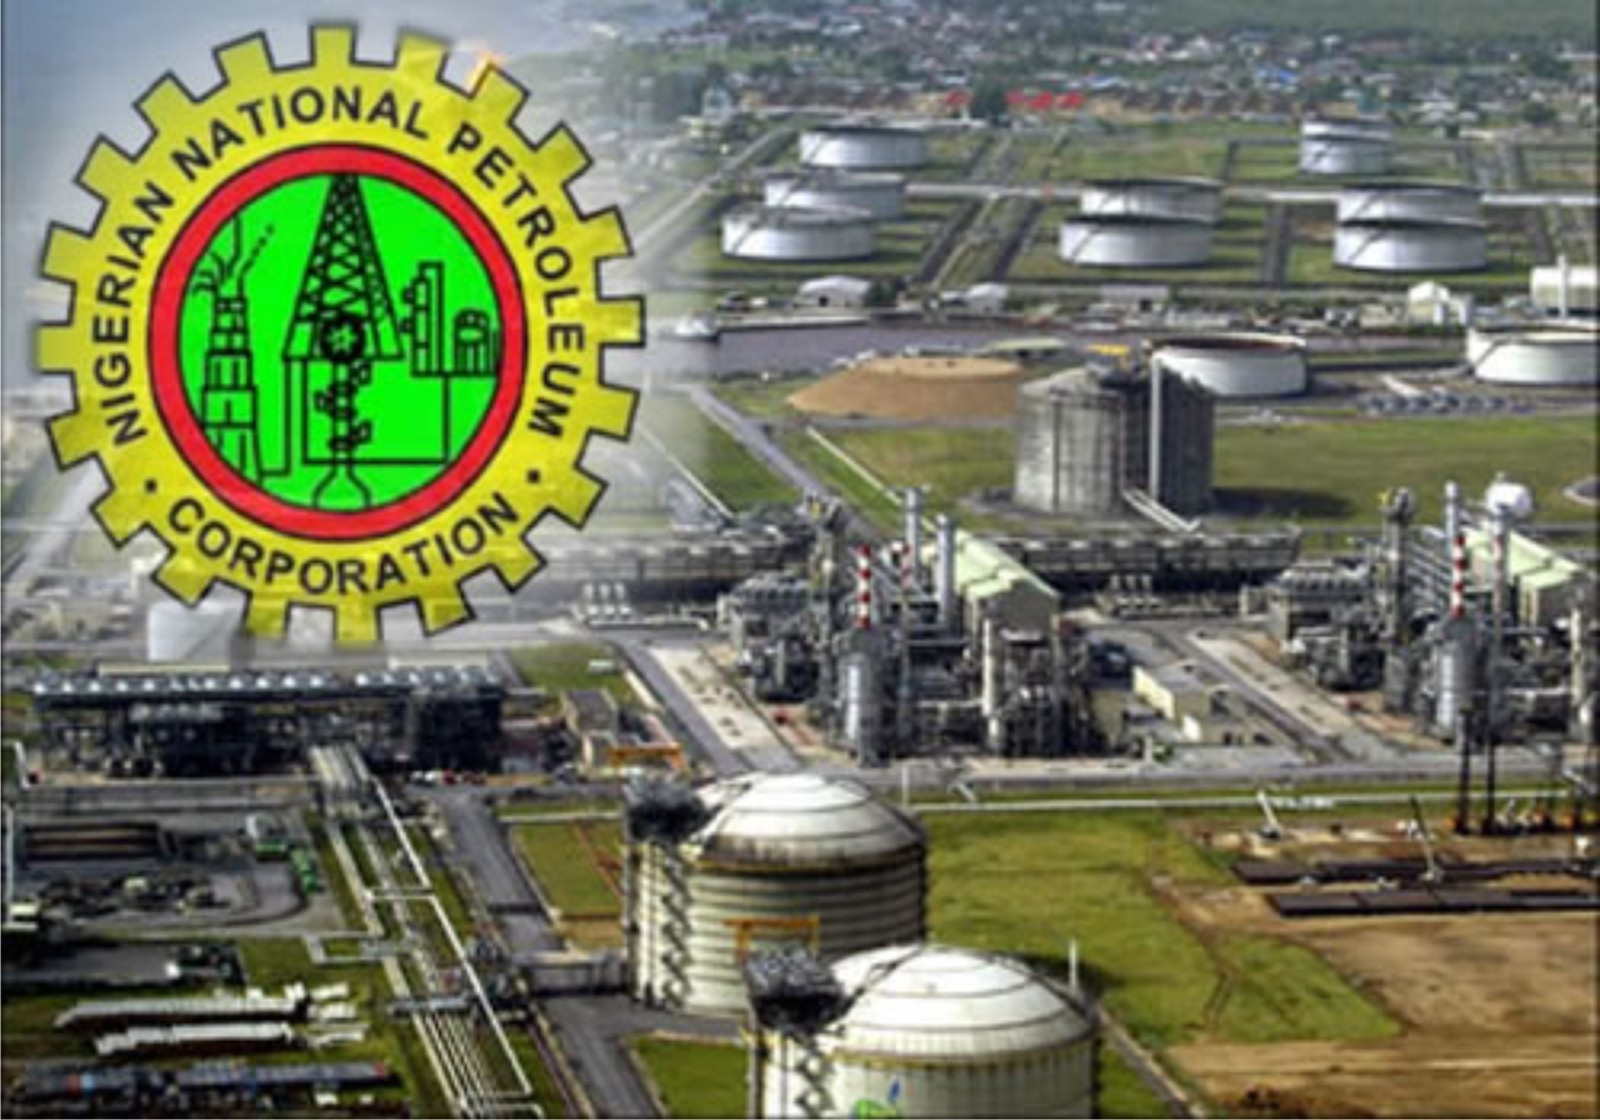 NNPC, Seplat sign agreement to deliver 3.4bscfd of gas By 2020